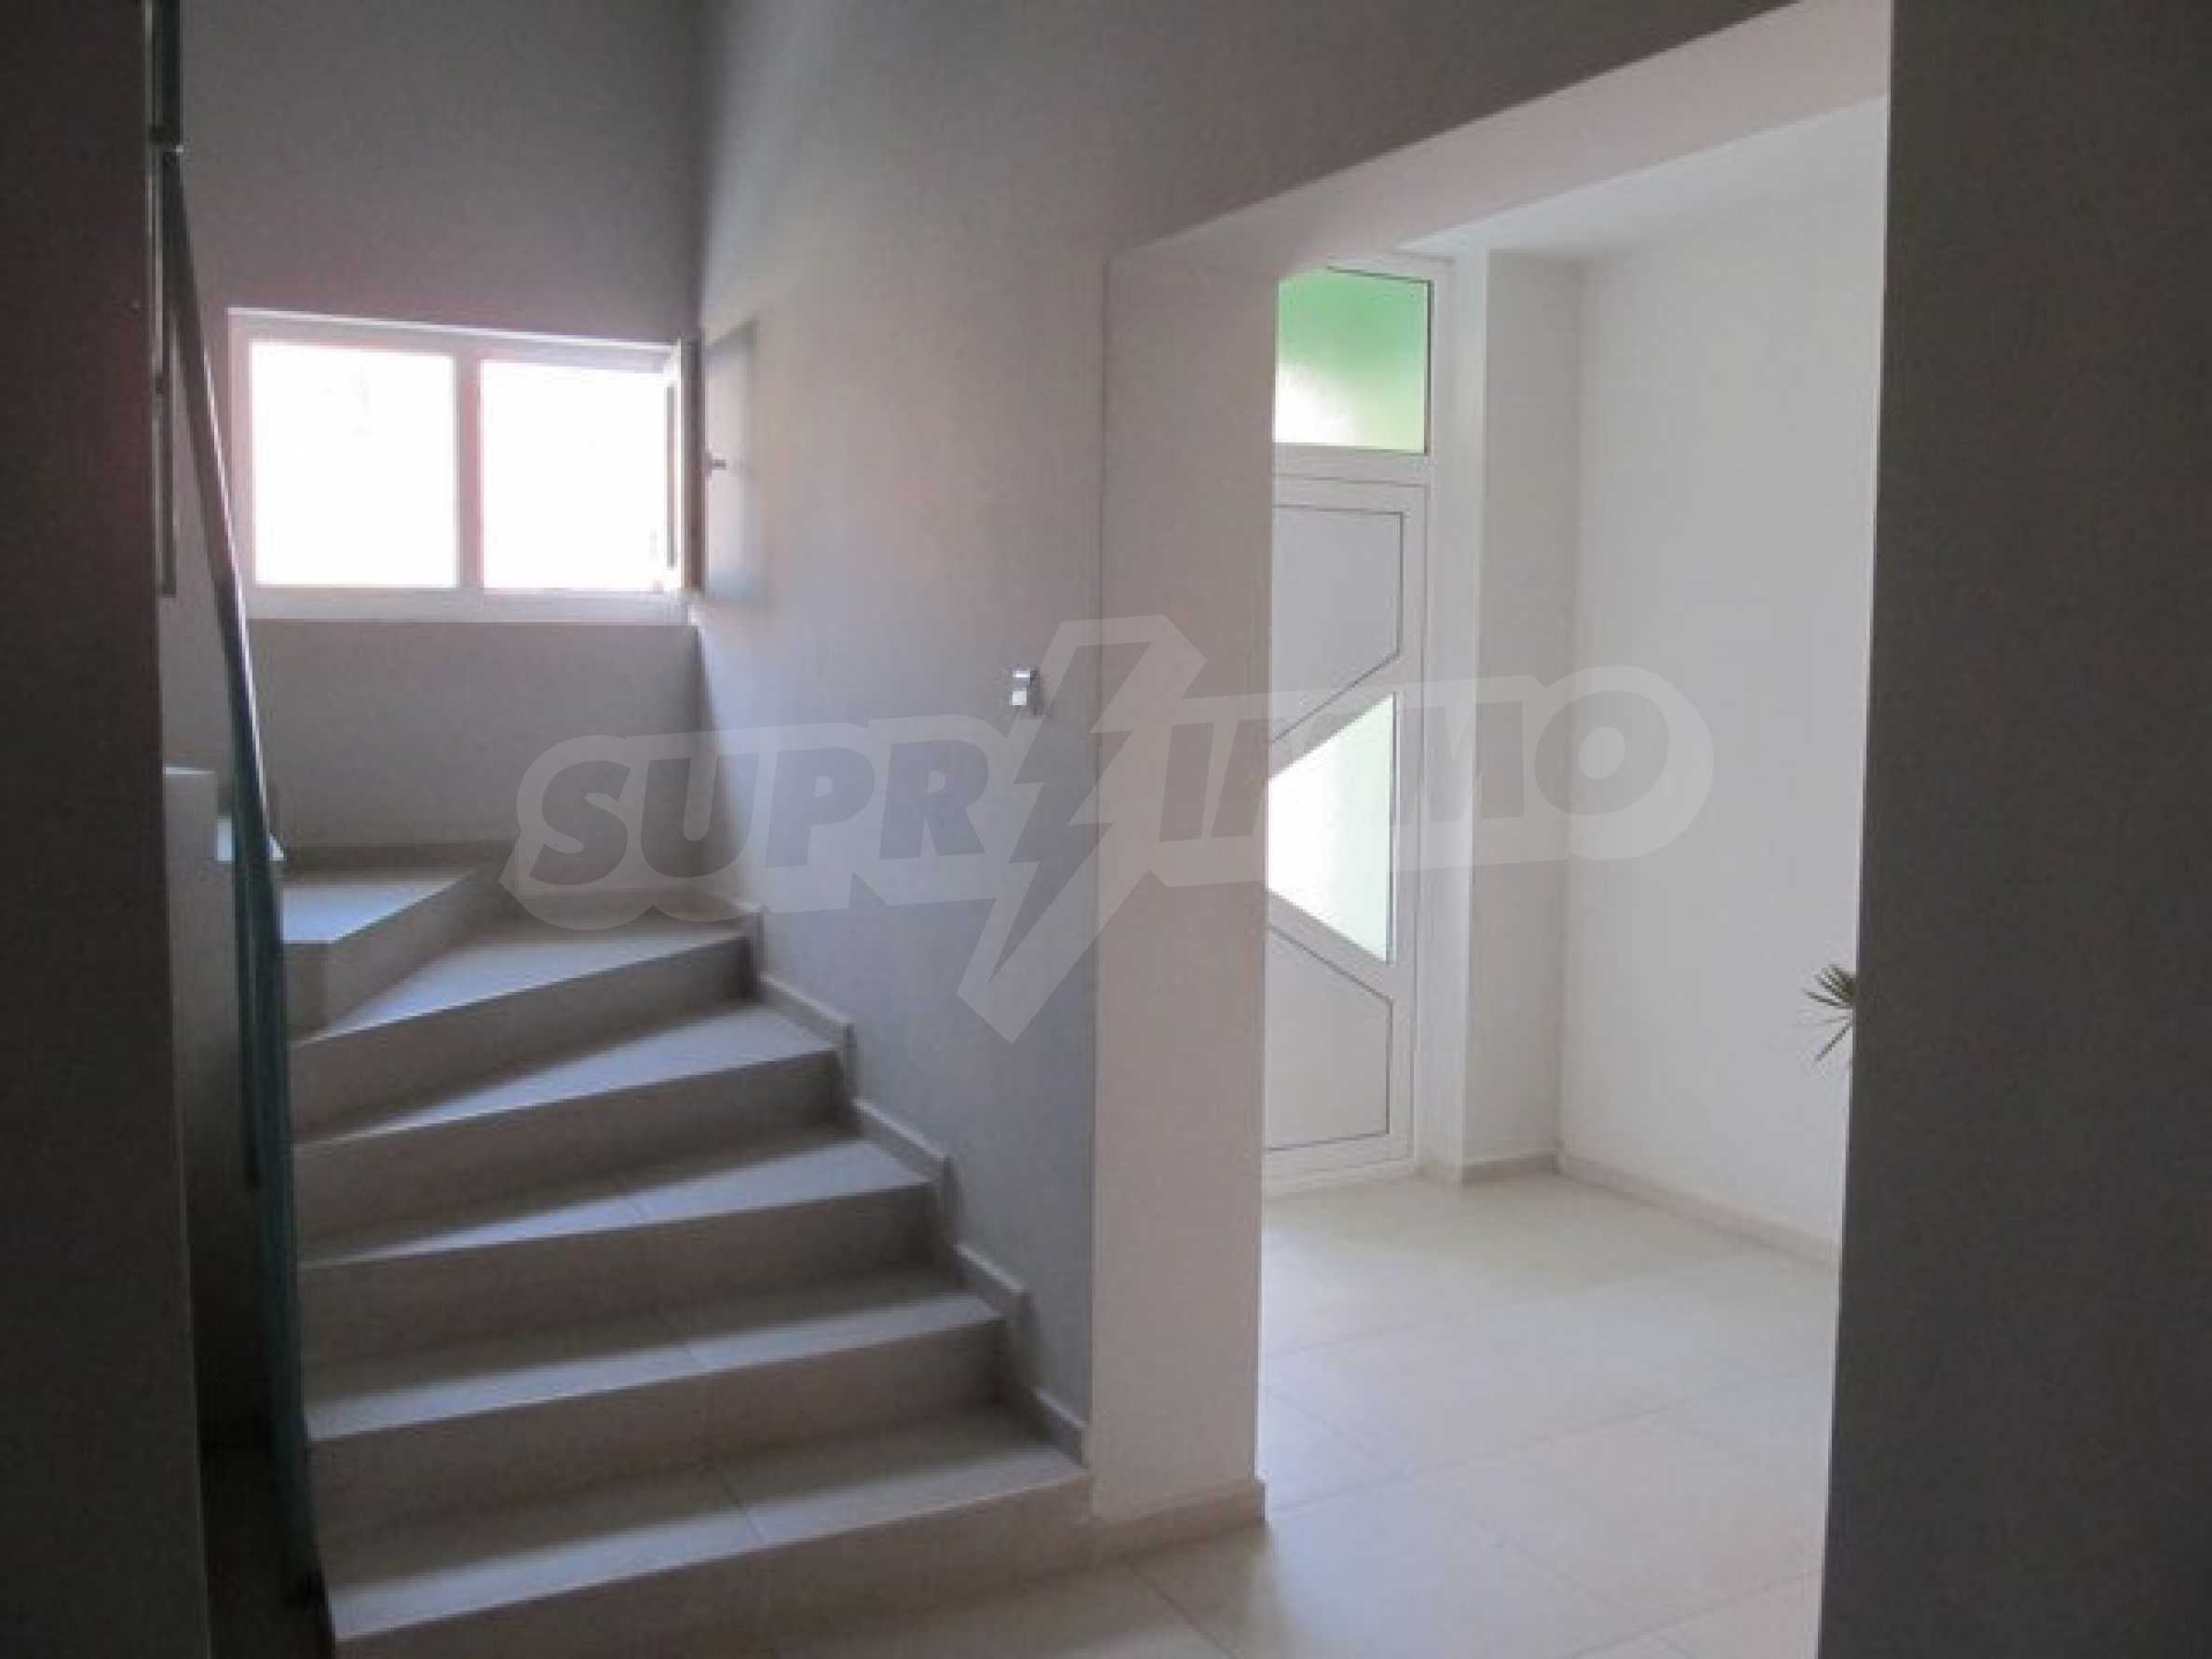 One-bedroom apartment for sale in Pomorie 6